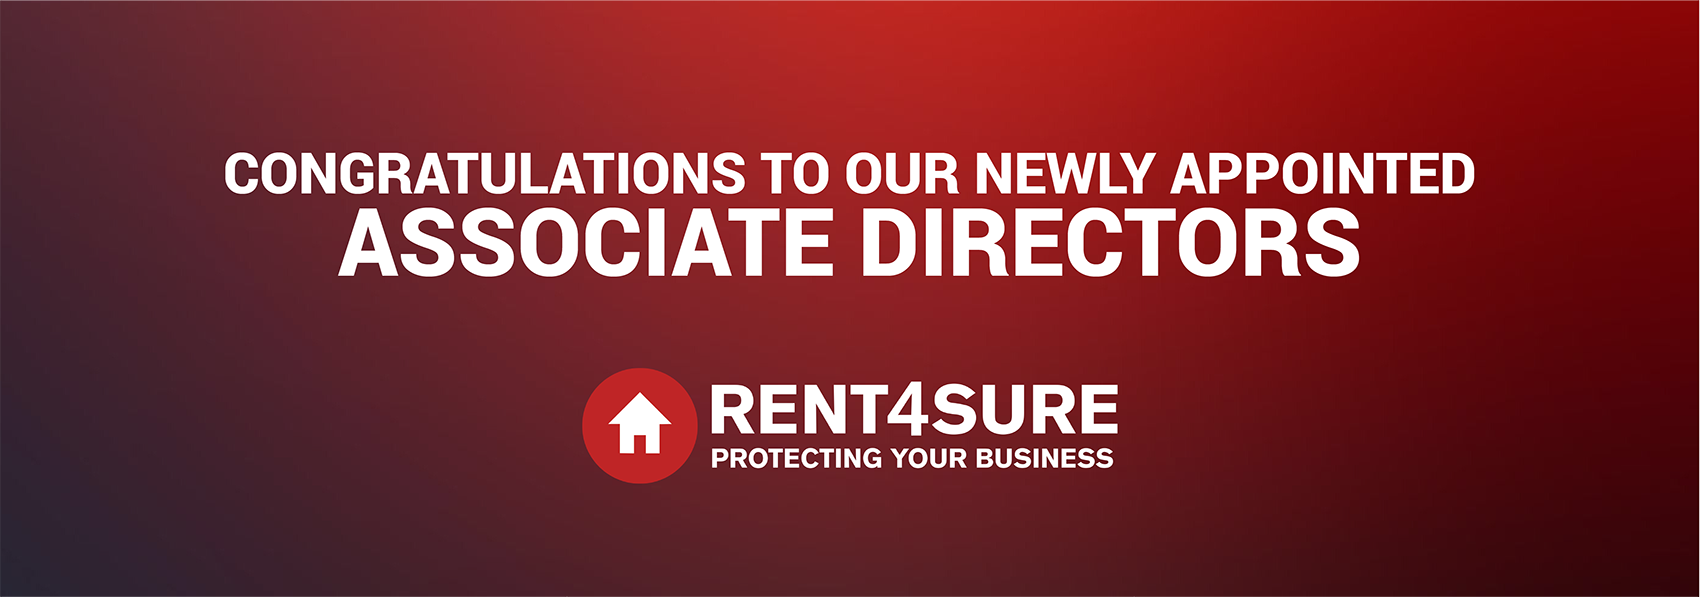 Rent4sure appoints three new associate directors